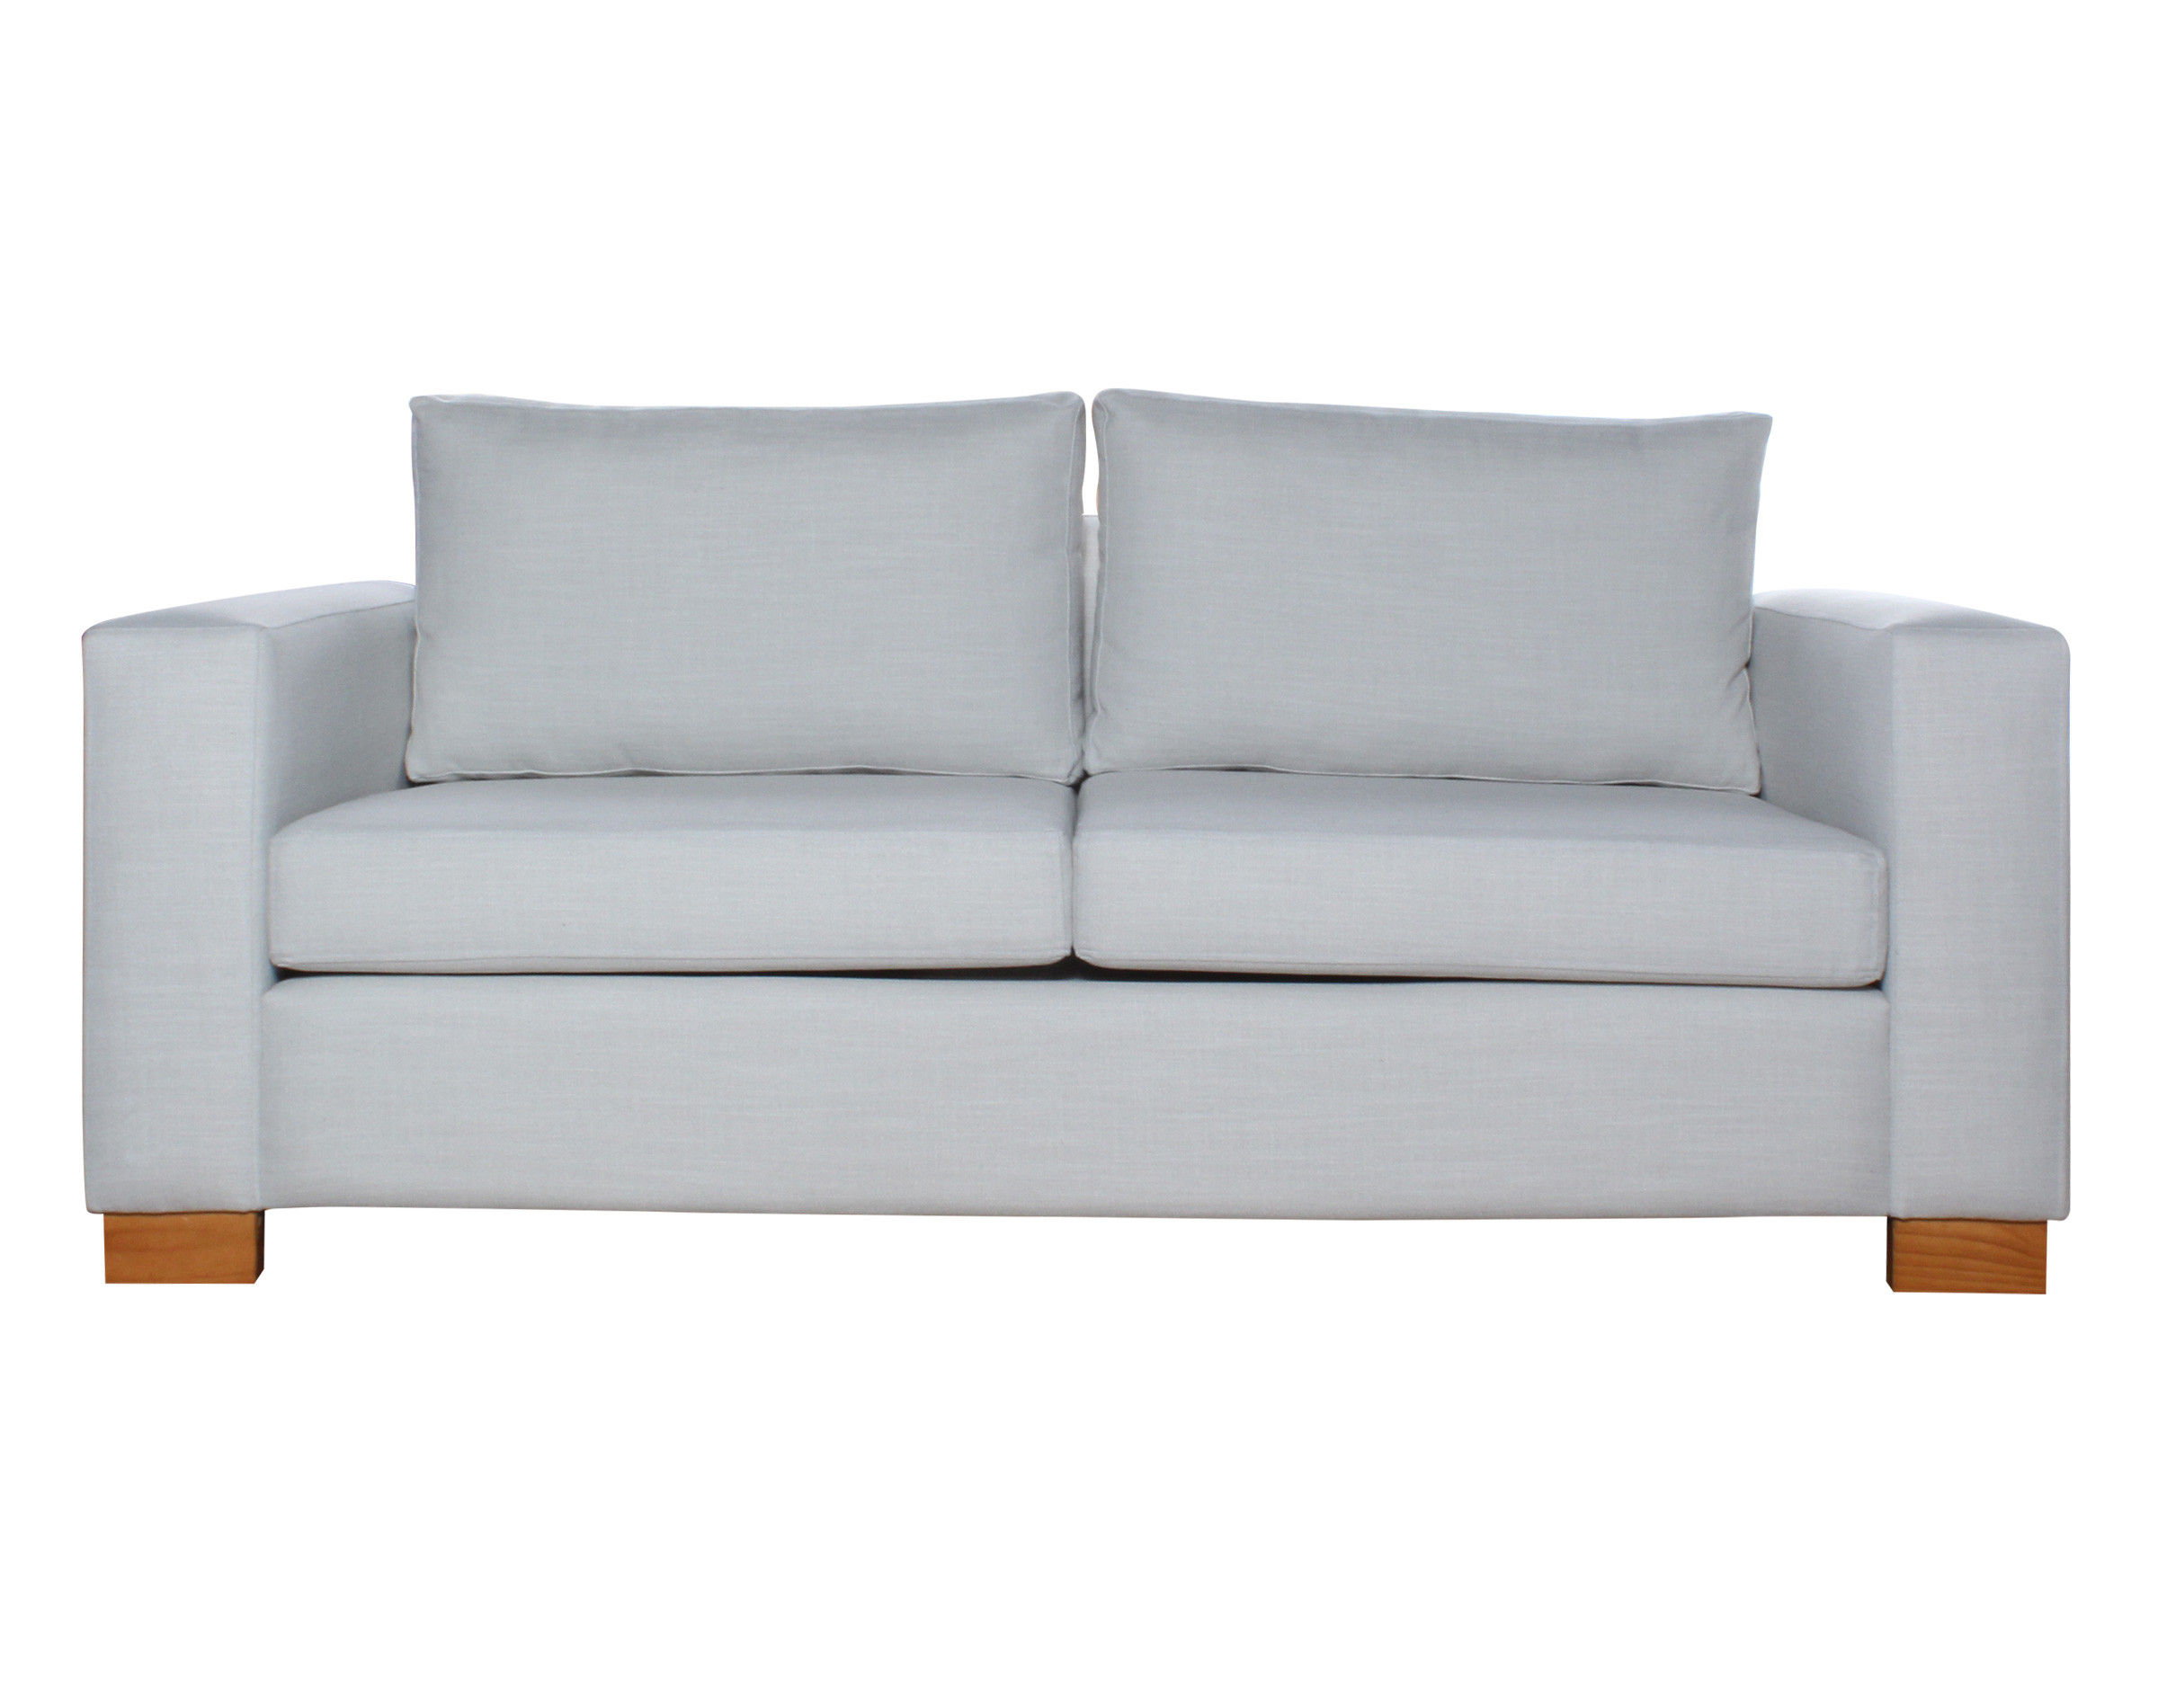 Sofa Cama Urban New York Crudo